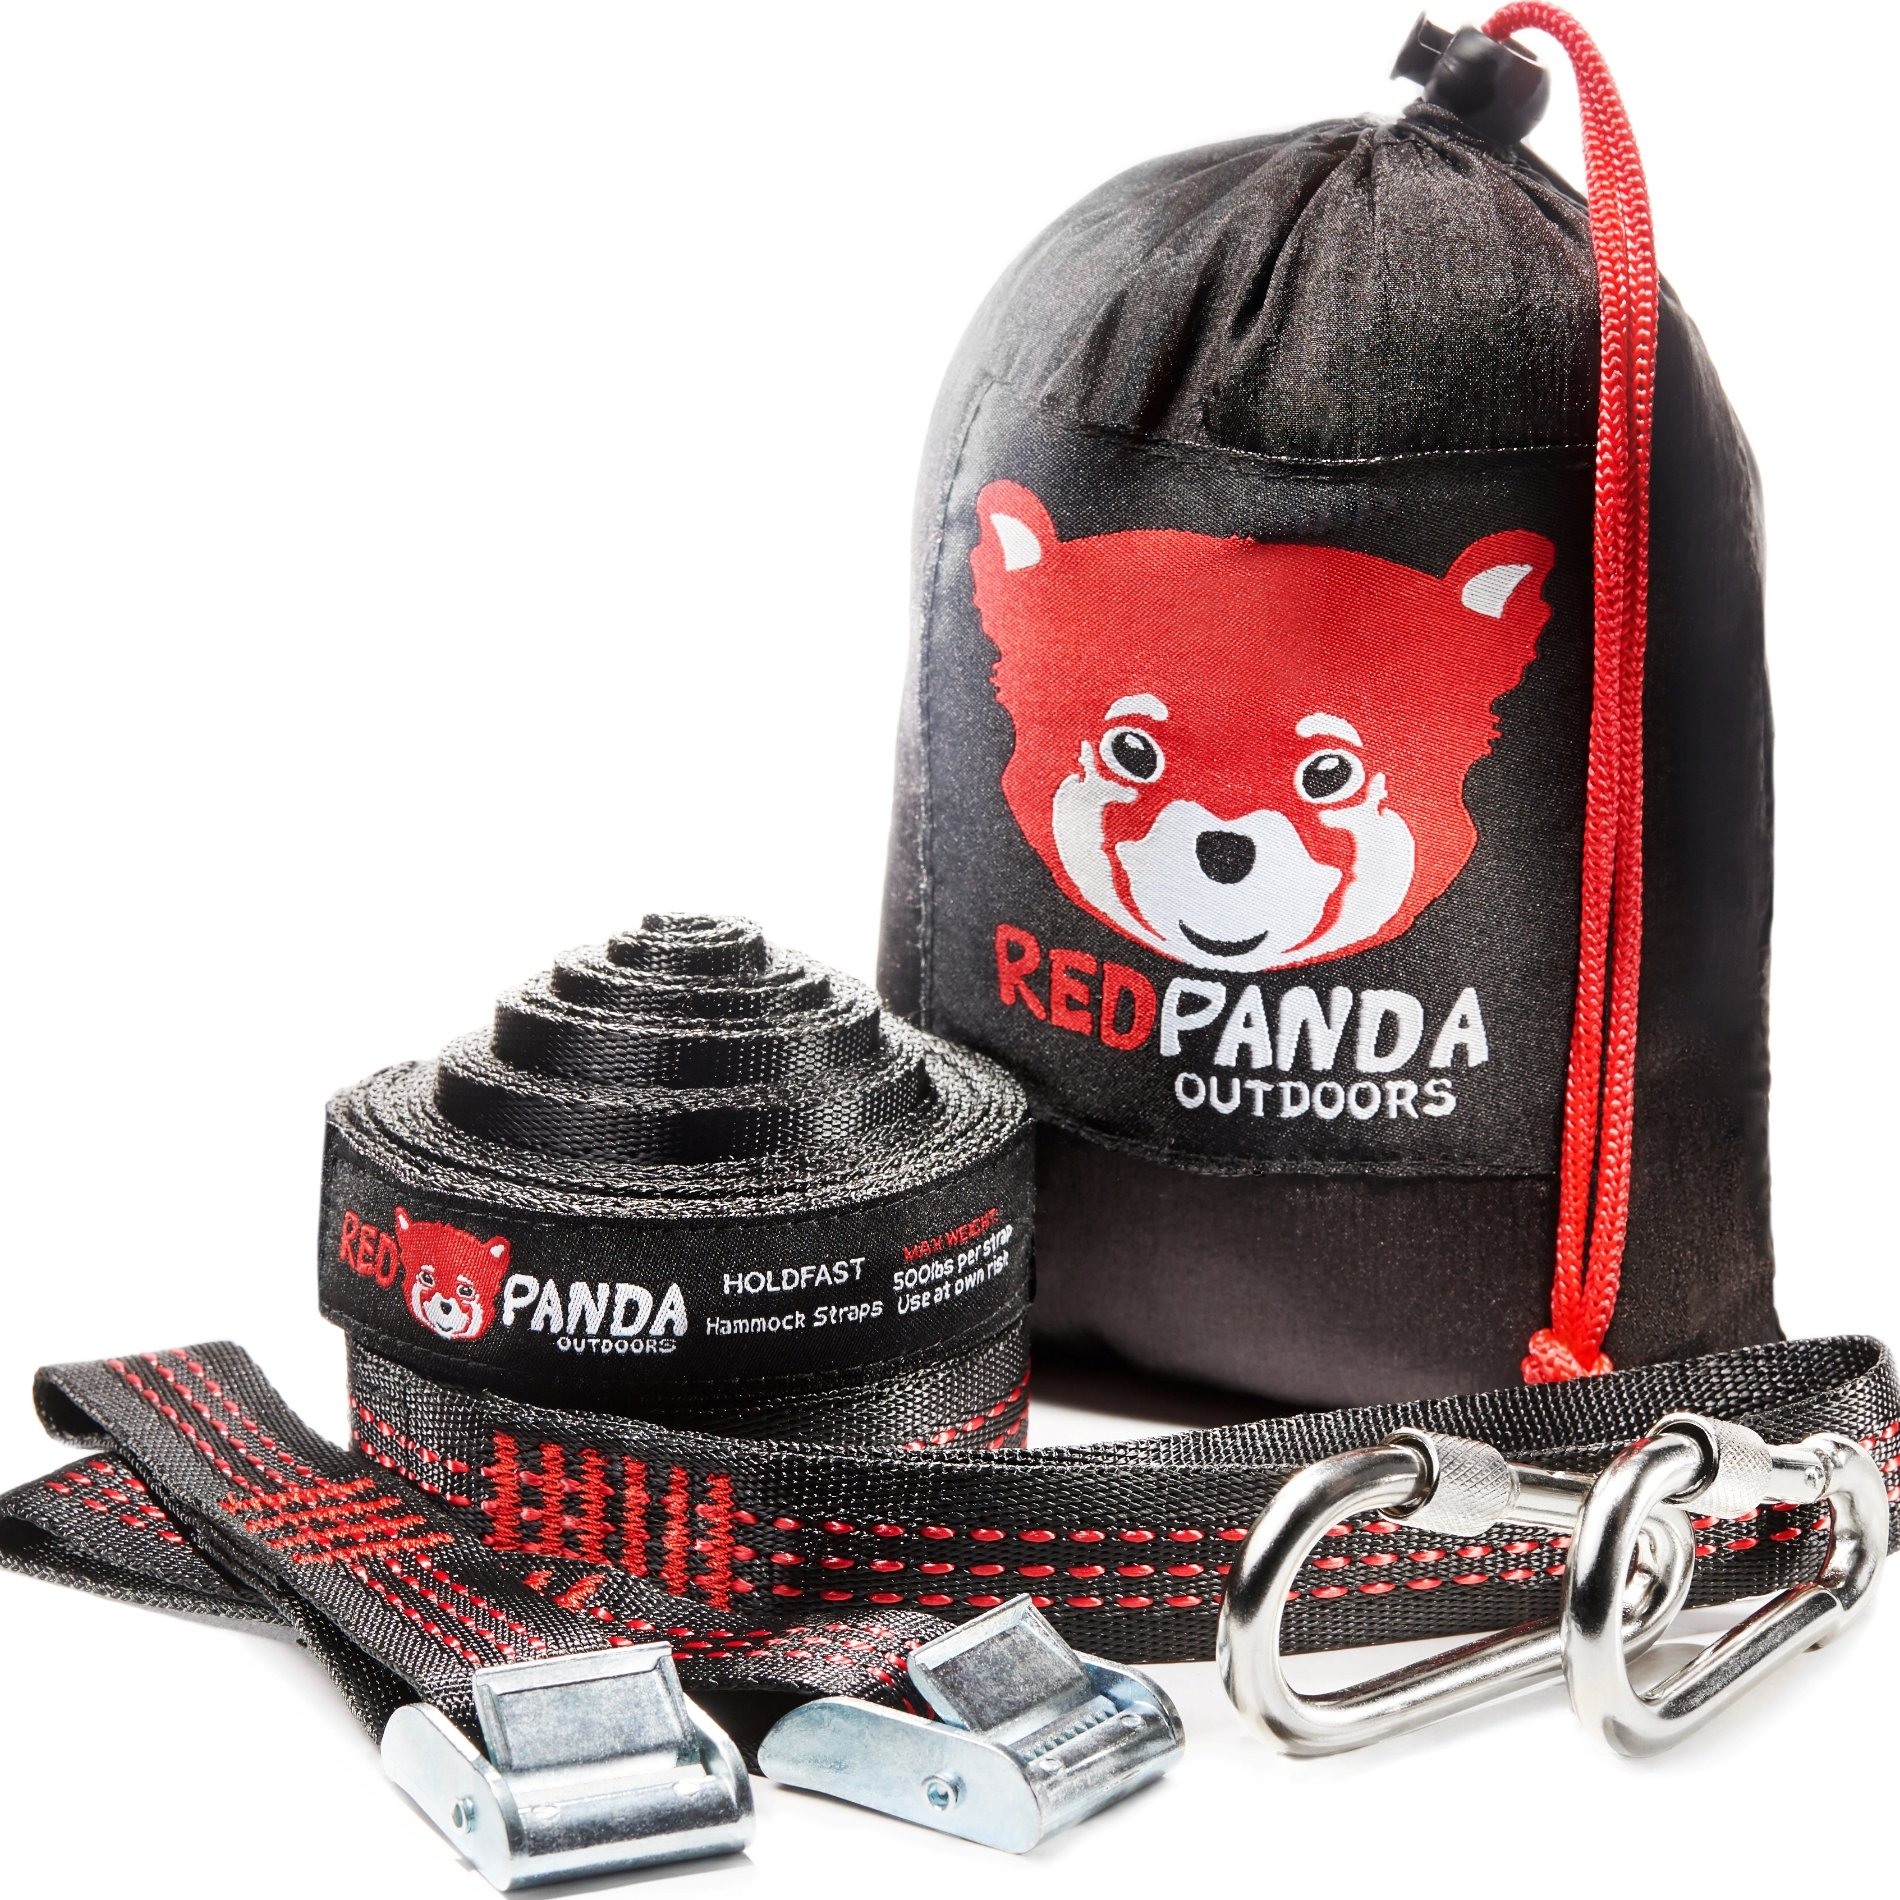 RED PANDA Outdoors Top-Notch Hammock Tree Straps - The Easiest Way to Hang Any Hammock | Strong & Lightweight Suspension System 2000+ LB | 25 FT Long - Strap Yourselves in, Folks!